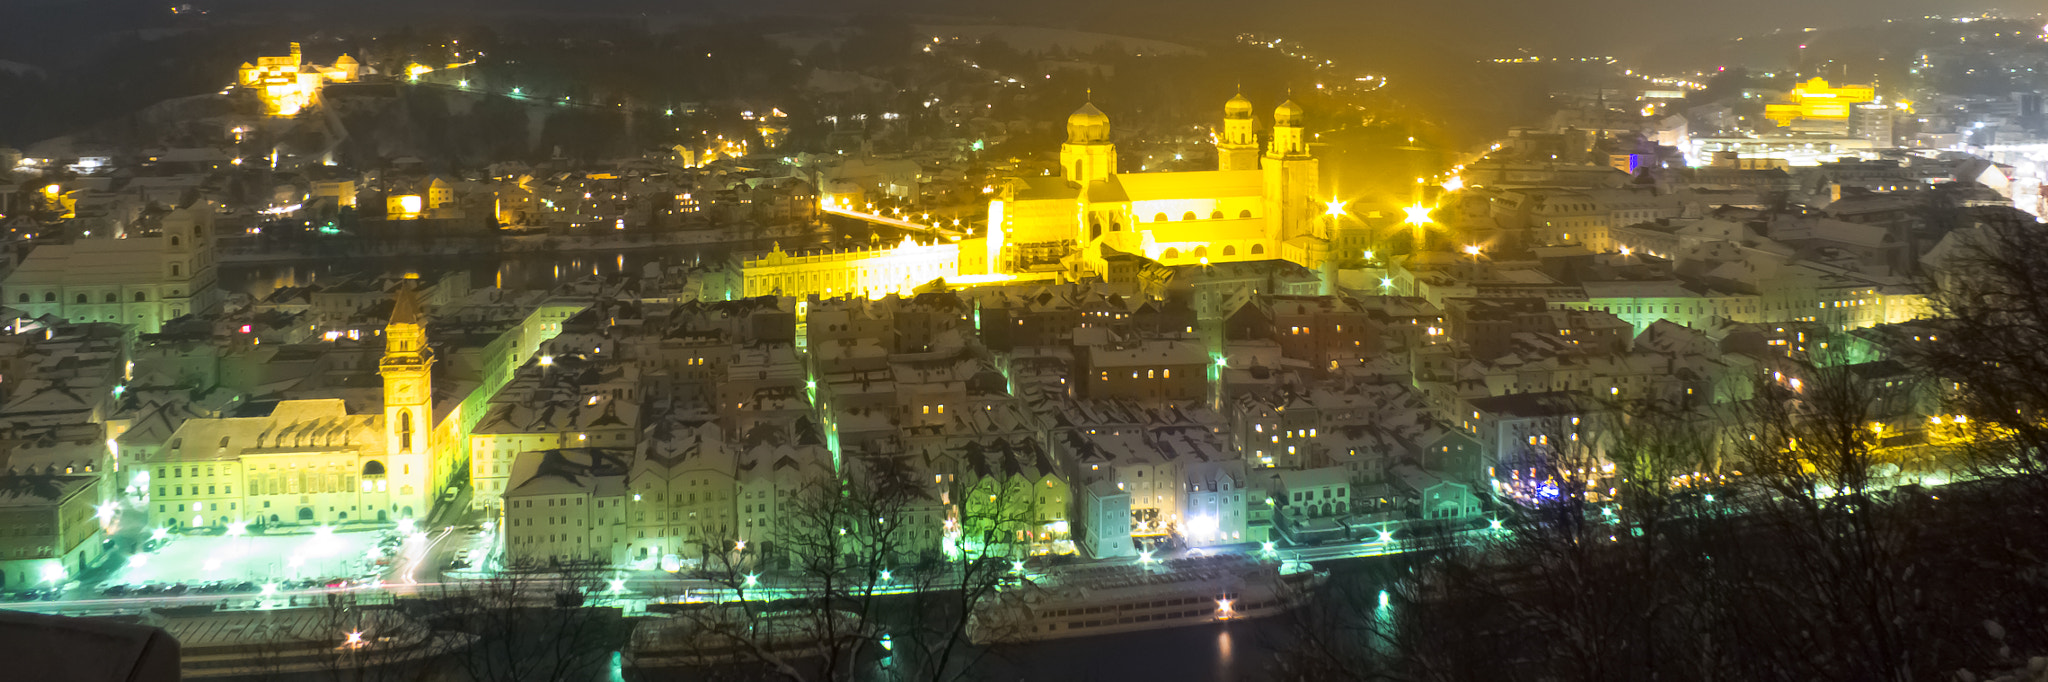 Photograph night panorama of passau by DHα Photography on 500px